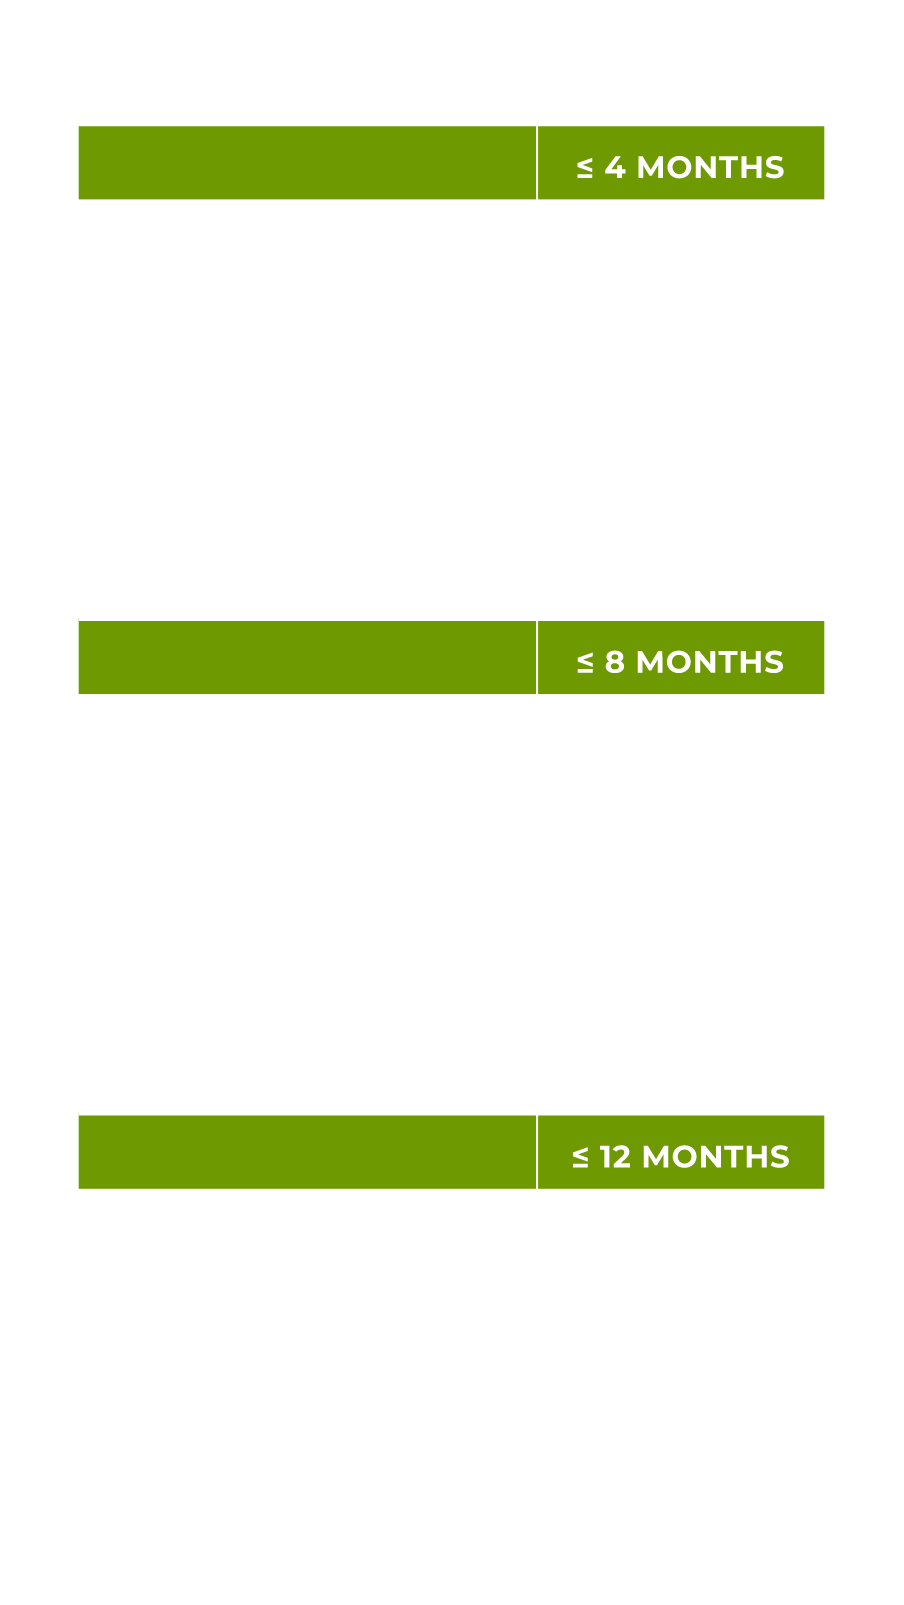 Chicken Meal & RiceFeeding Chart